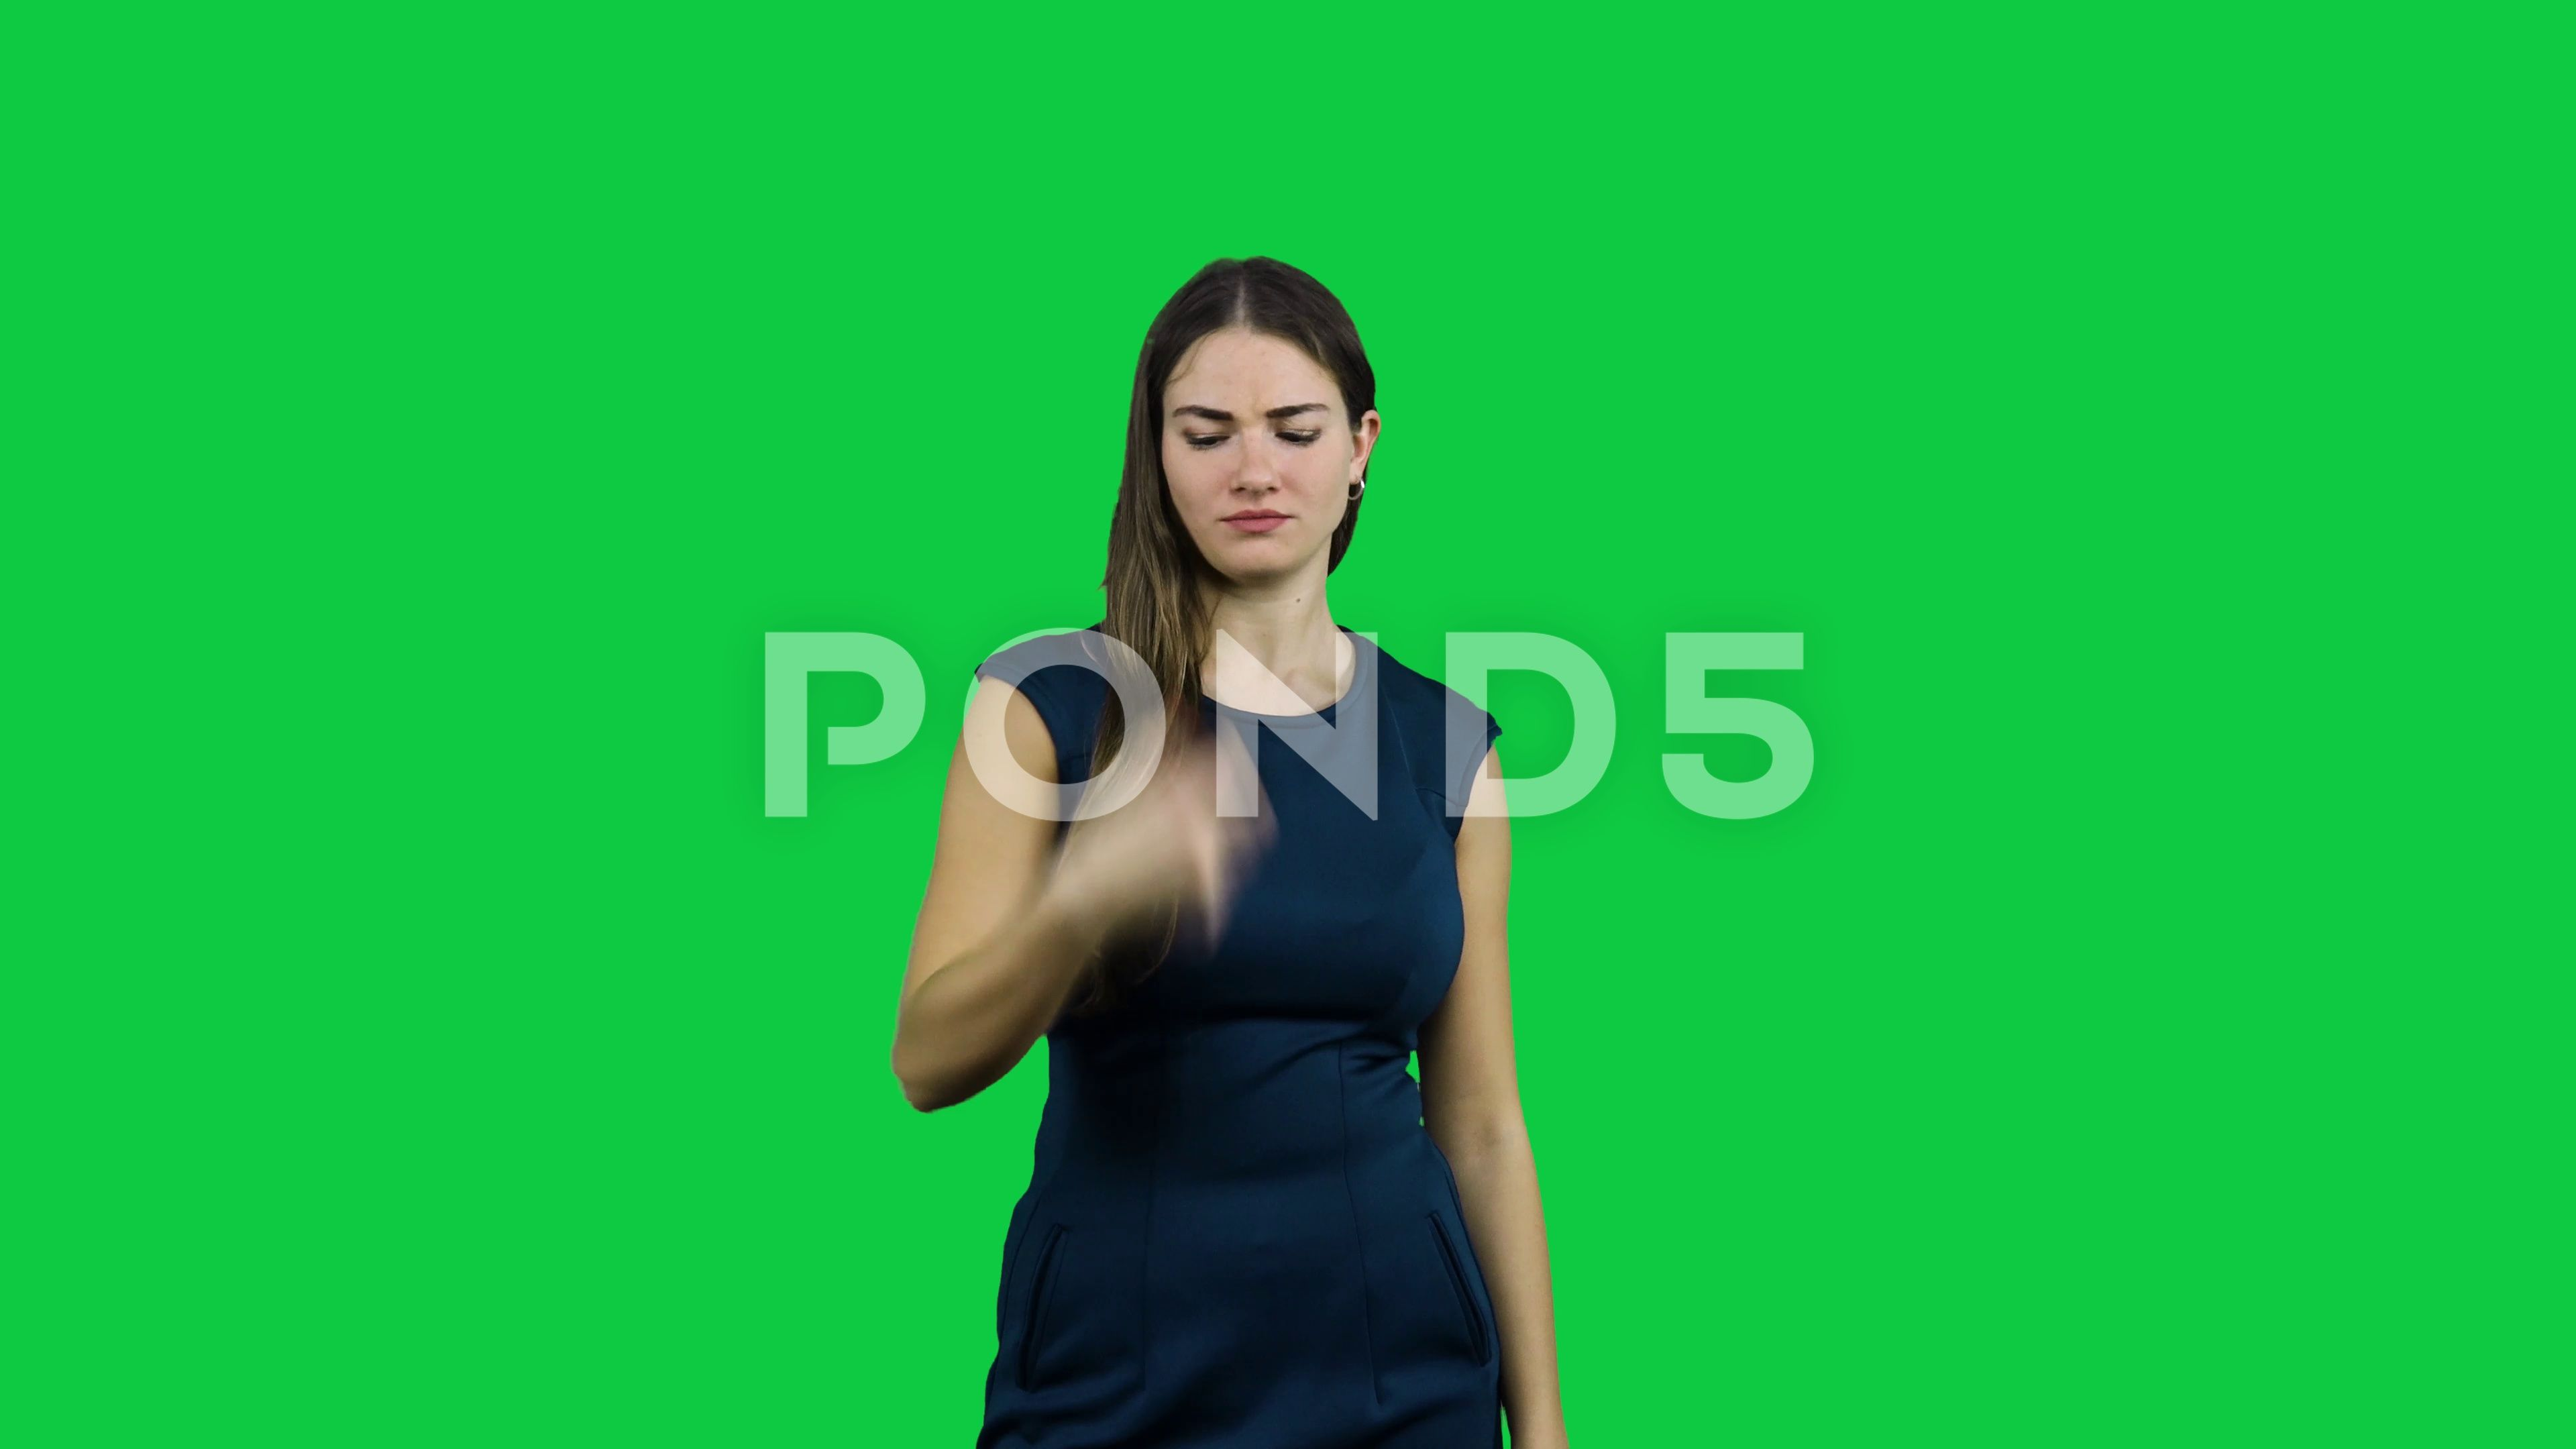 Girl usees a broken tv remote in front of a green screen